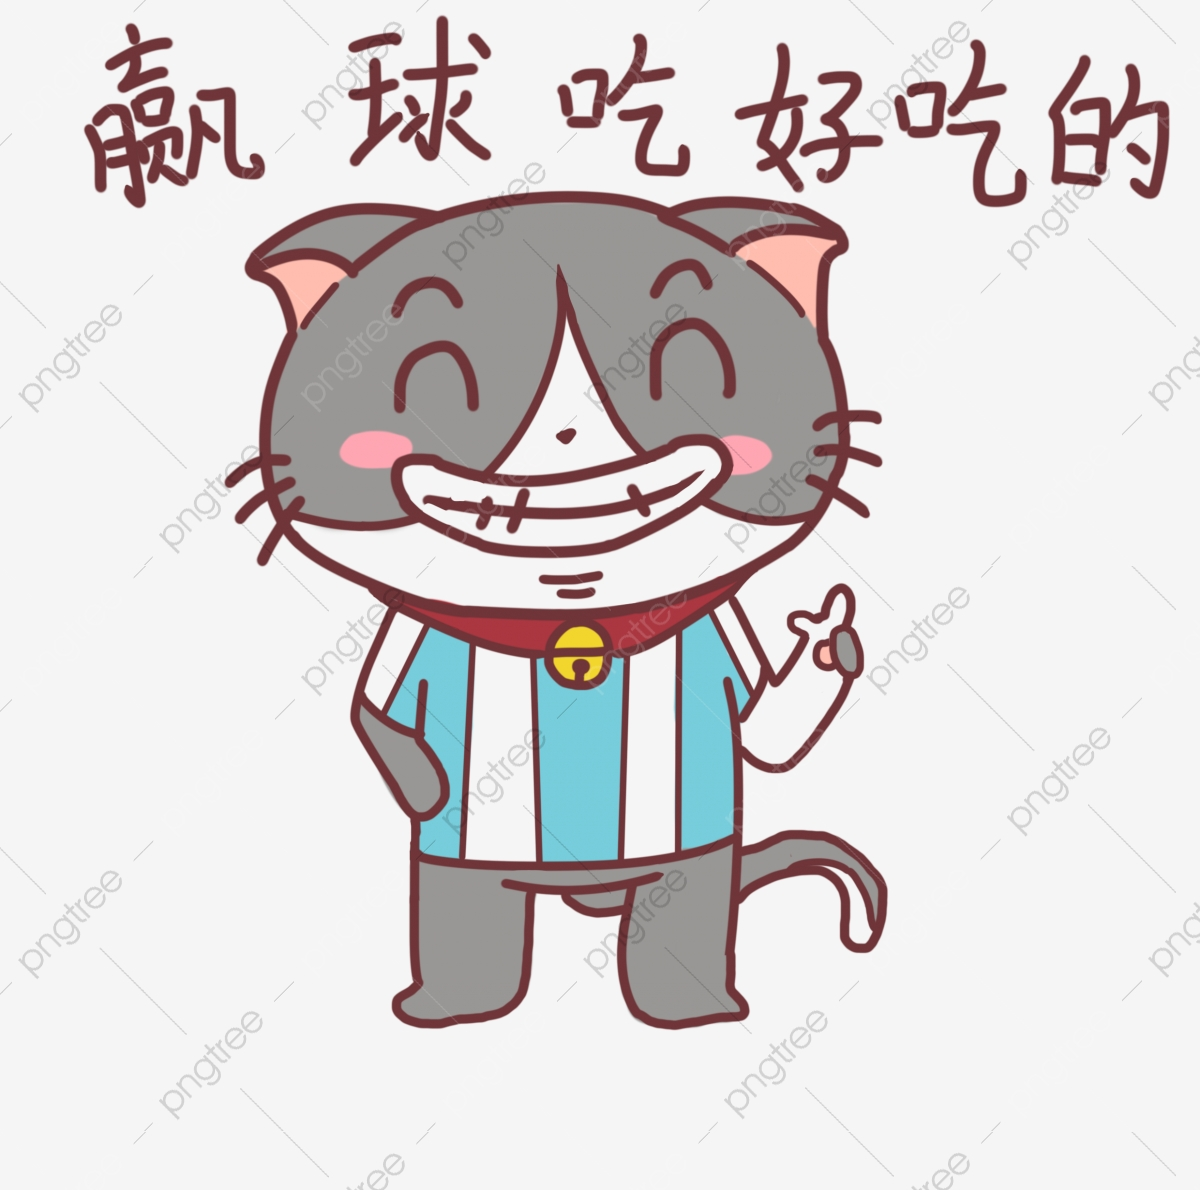 Win clipart cute. World cup expression and